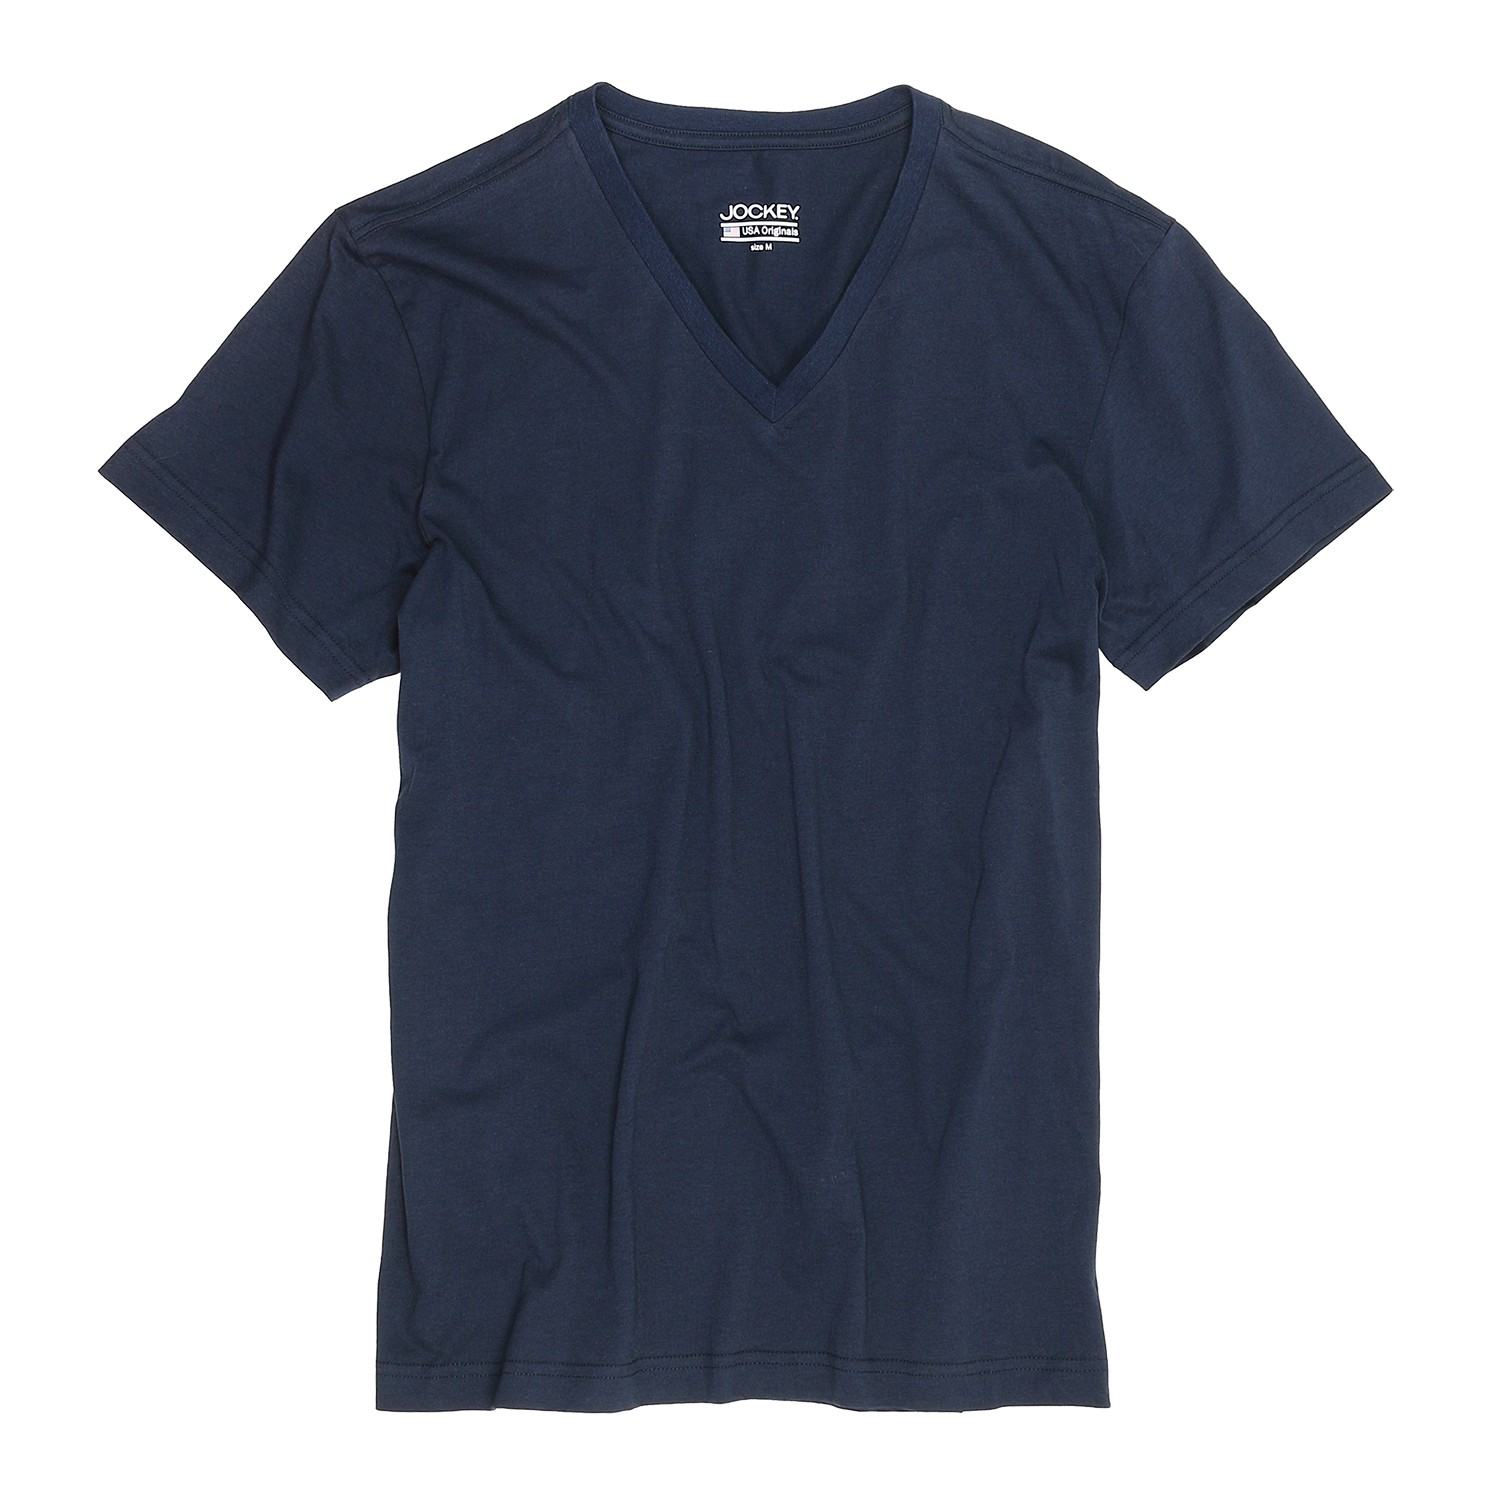 Detail Image to T-shirt with v-neck from Jockey in oversize until 6XL, dark blue